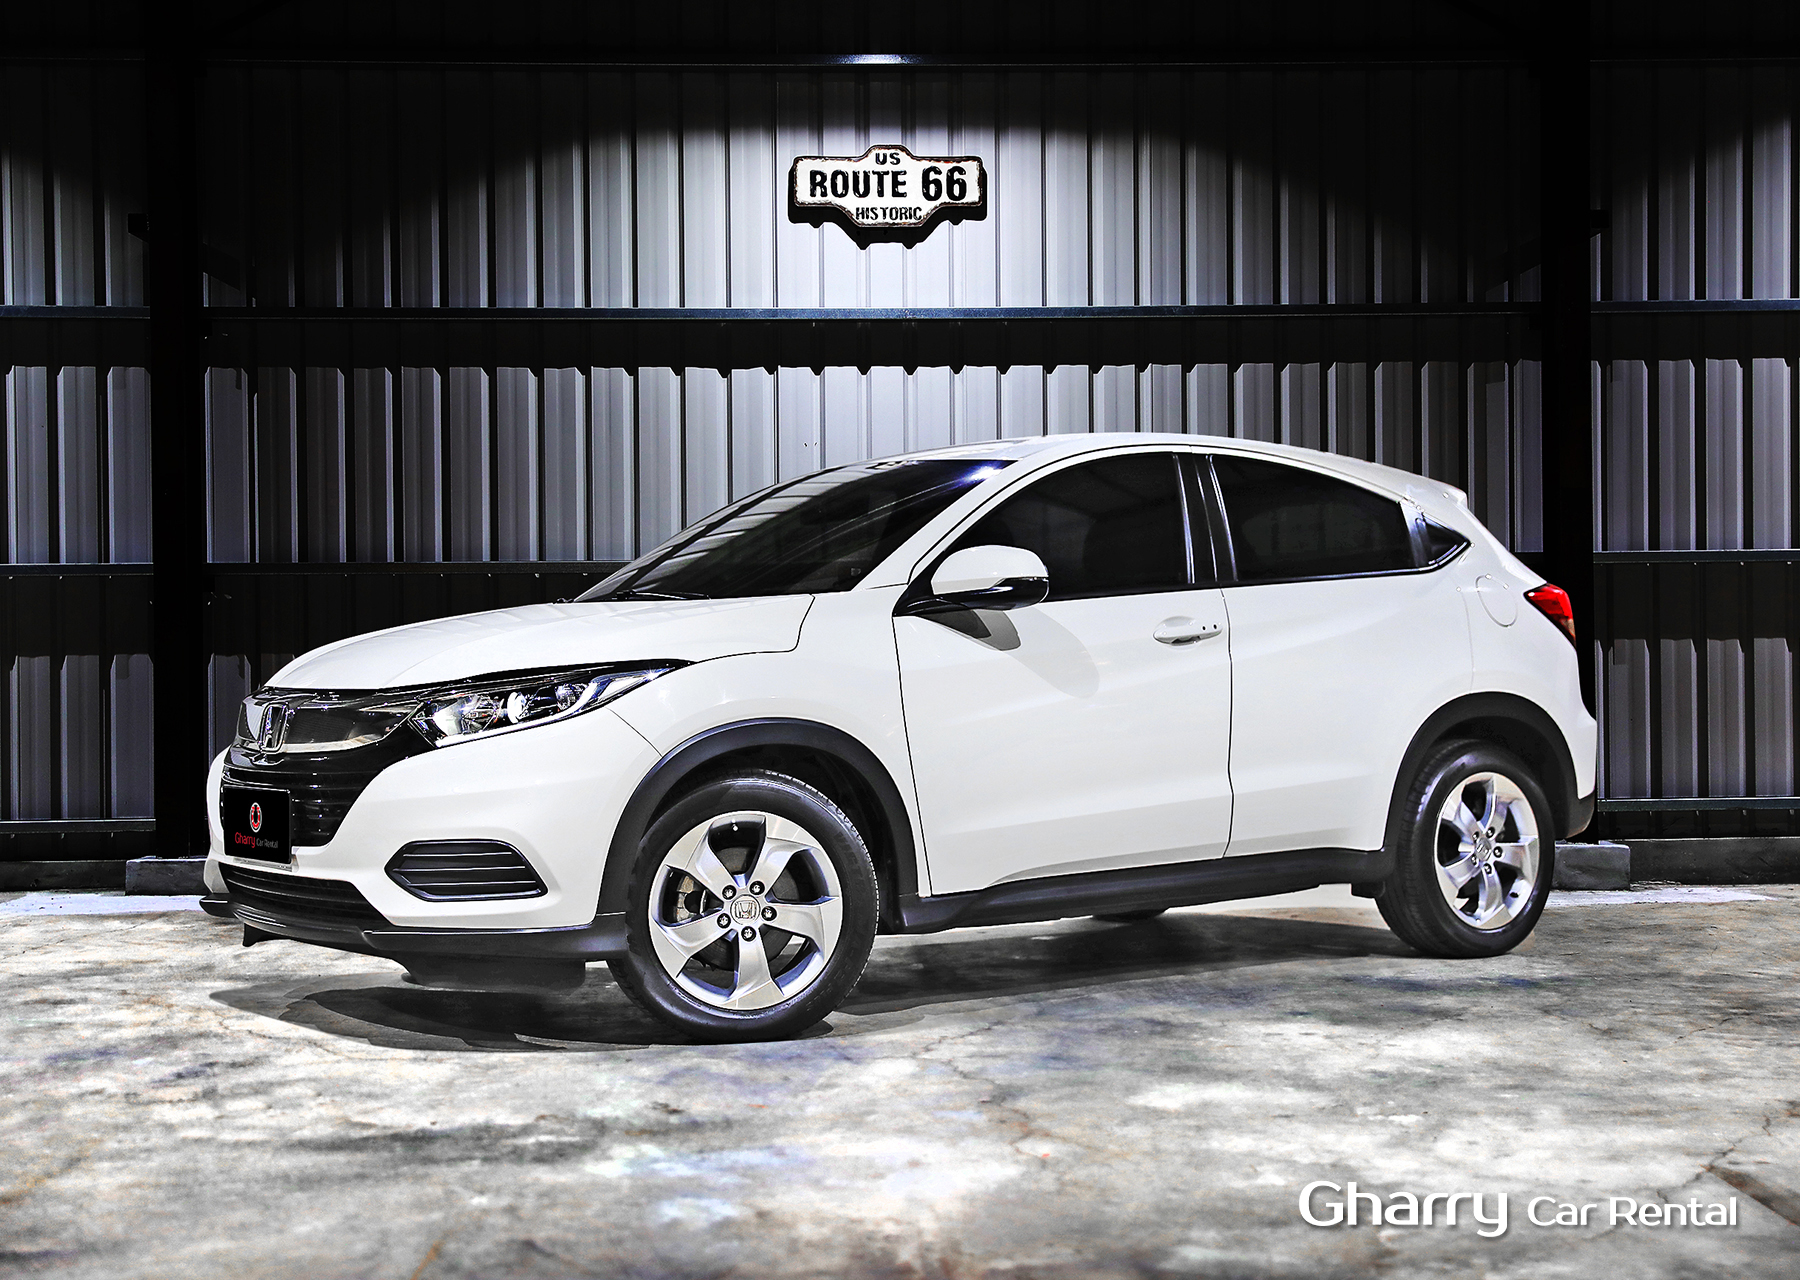 Gharry car HONDA HRV(Vezel)